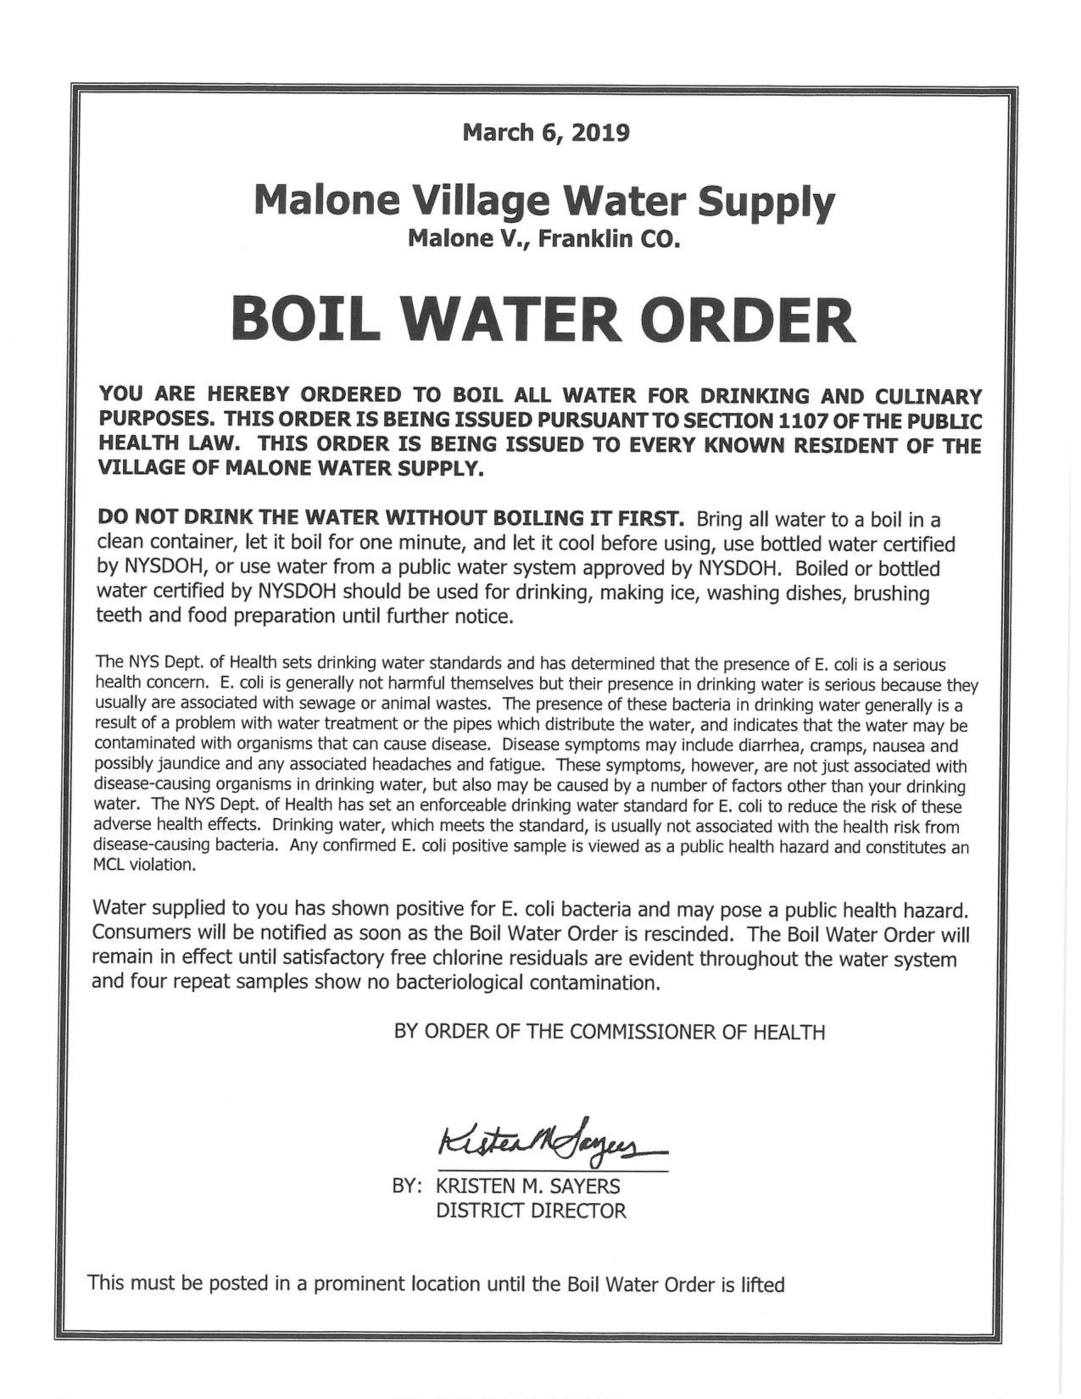 UPDATE: Boil water order lifted for village residents in